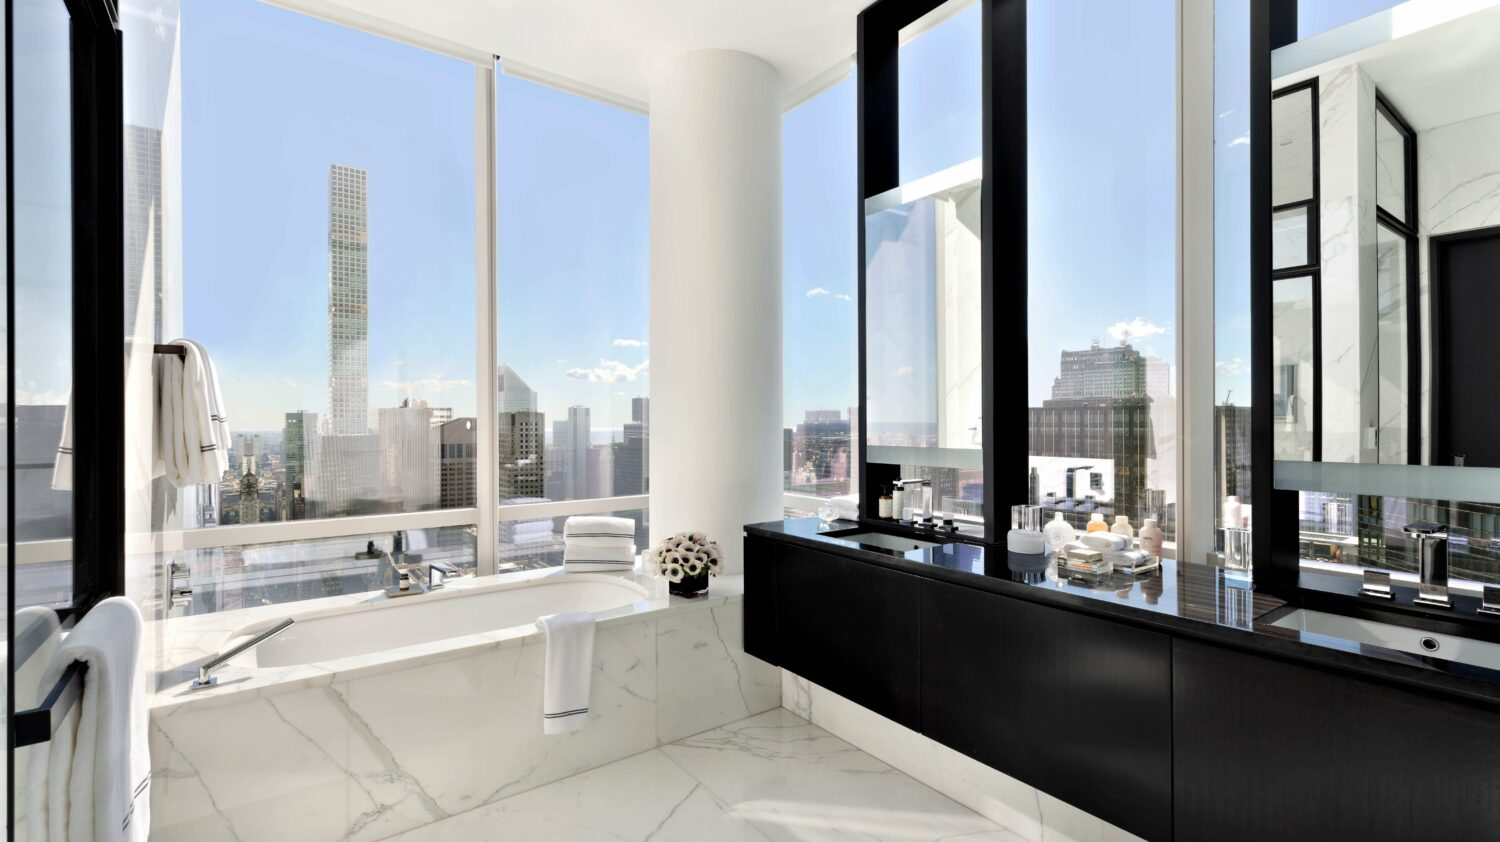 bathroom view-park hyatt new york city